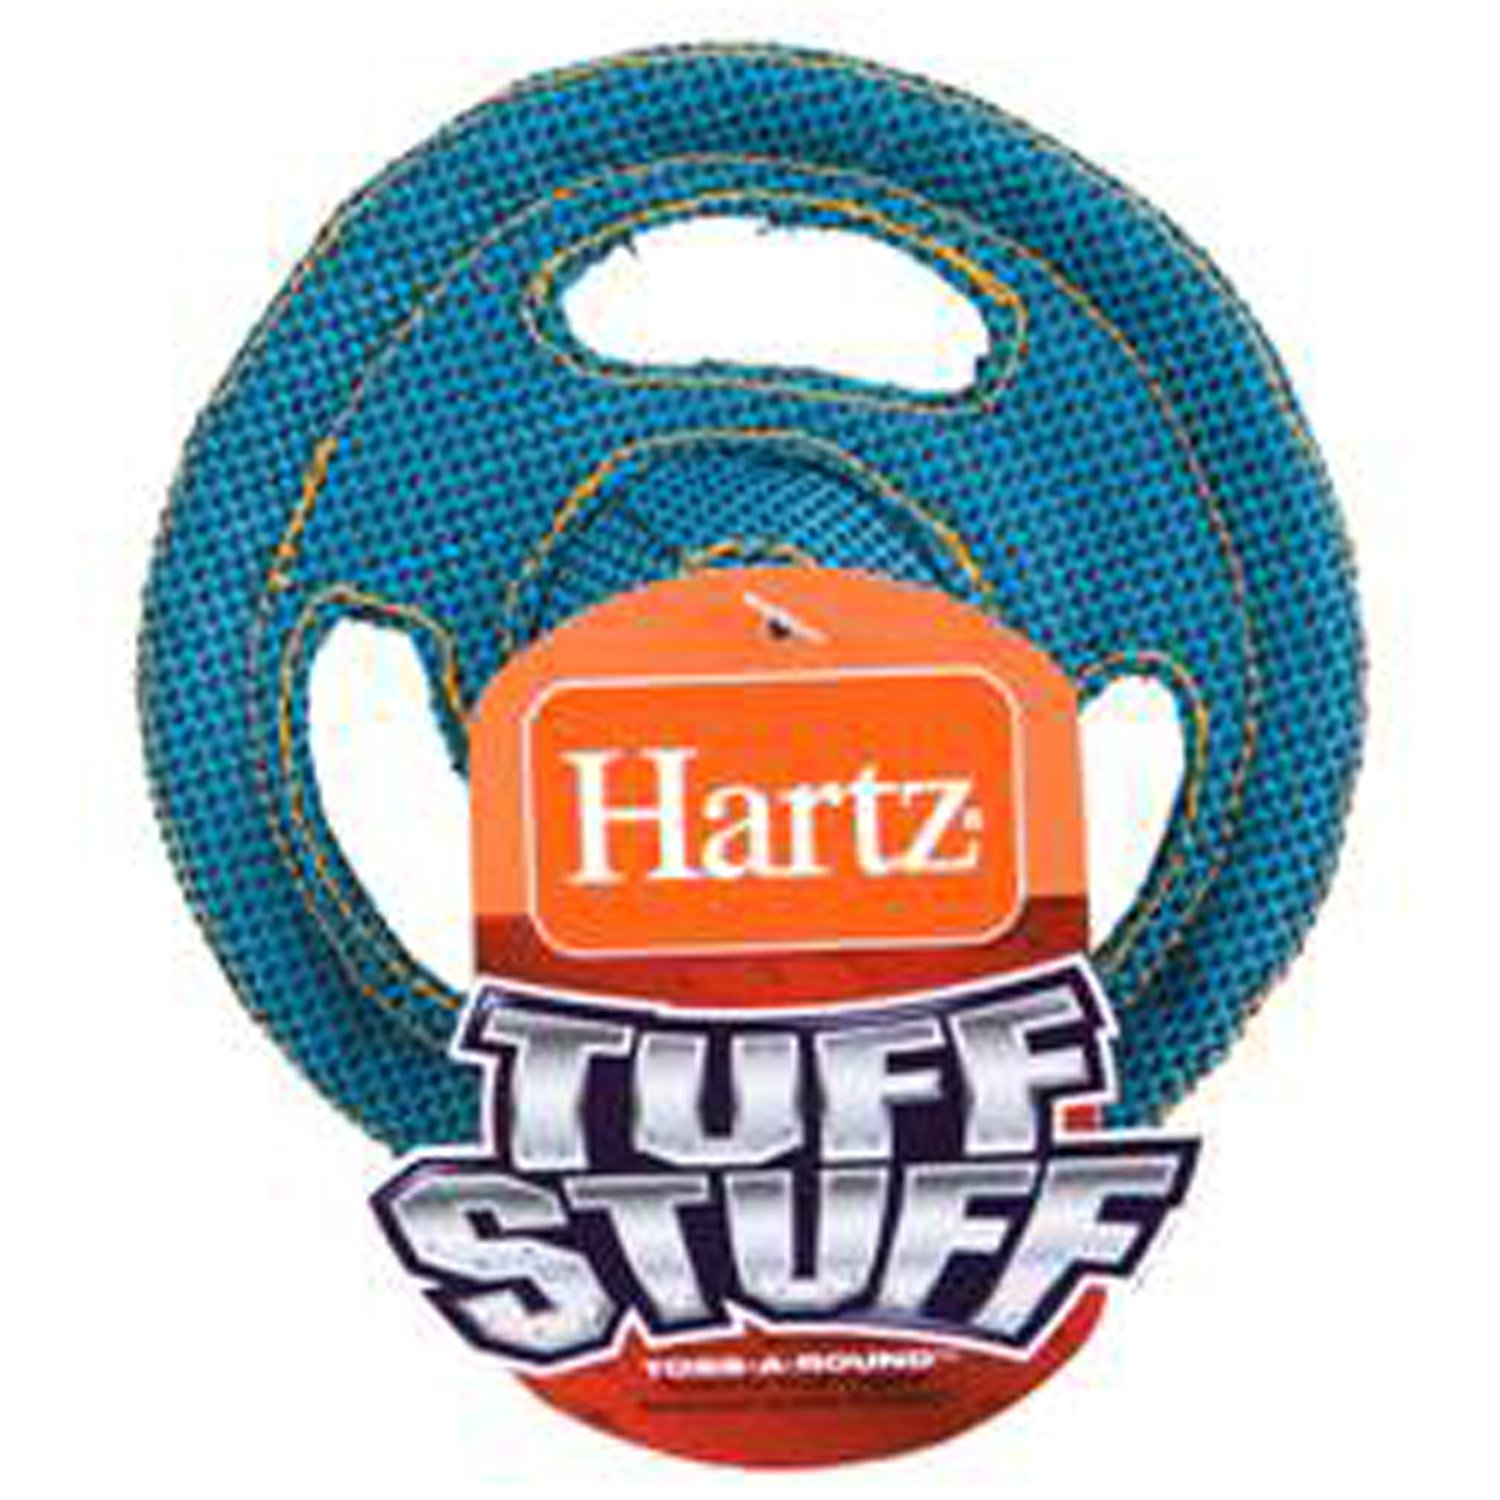 Hartz Tuff Stuff Flyer Dog Toy for Tiny Dogs, Colors May Vary hang glider jack with launcher colors may vary